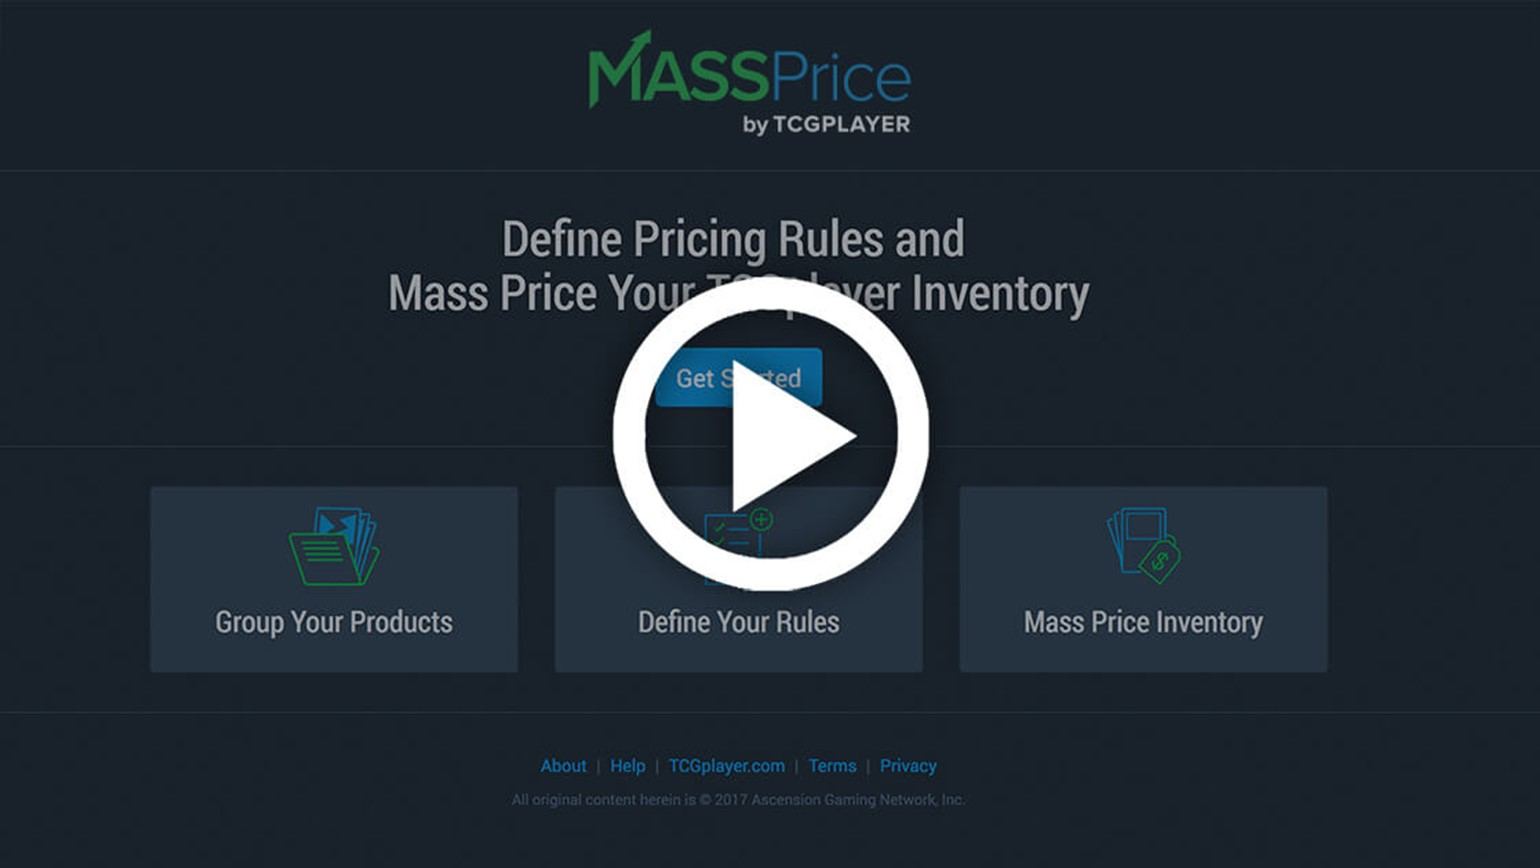 Free MassPrice App Now Available for Pro Sellers